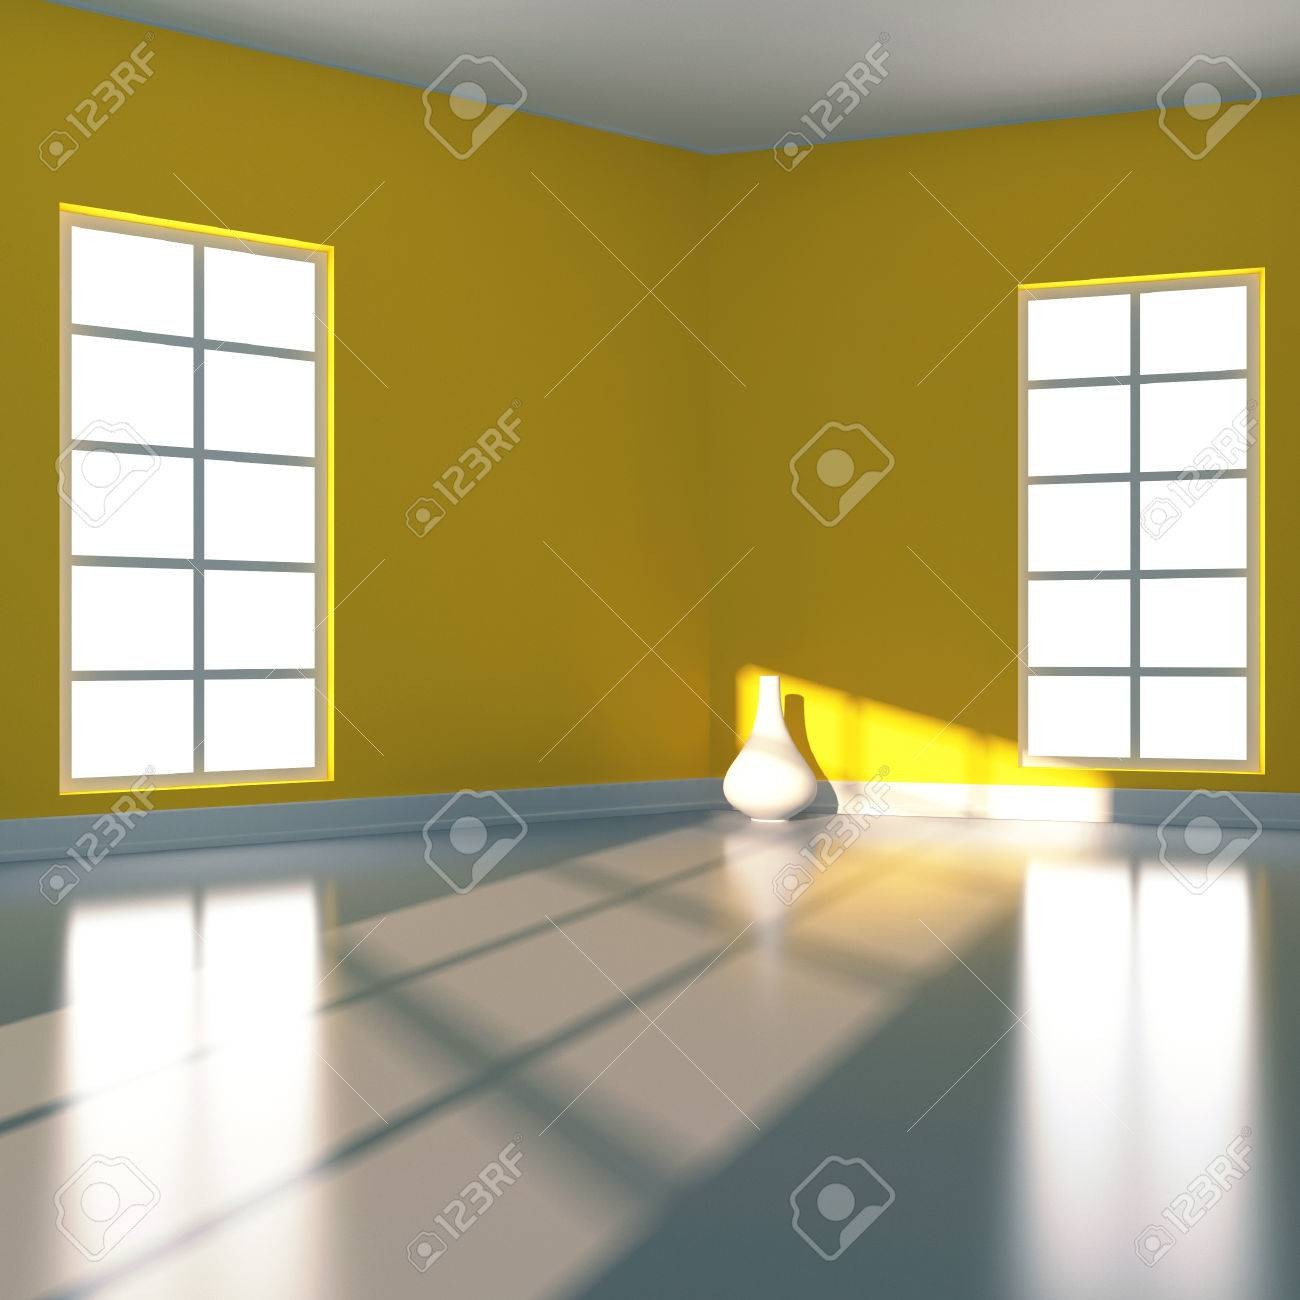 Empty room in yellow colour  3d render illustration Stock Illustration - 22279722